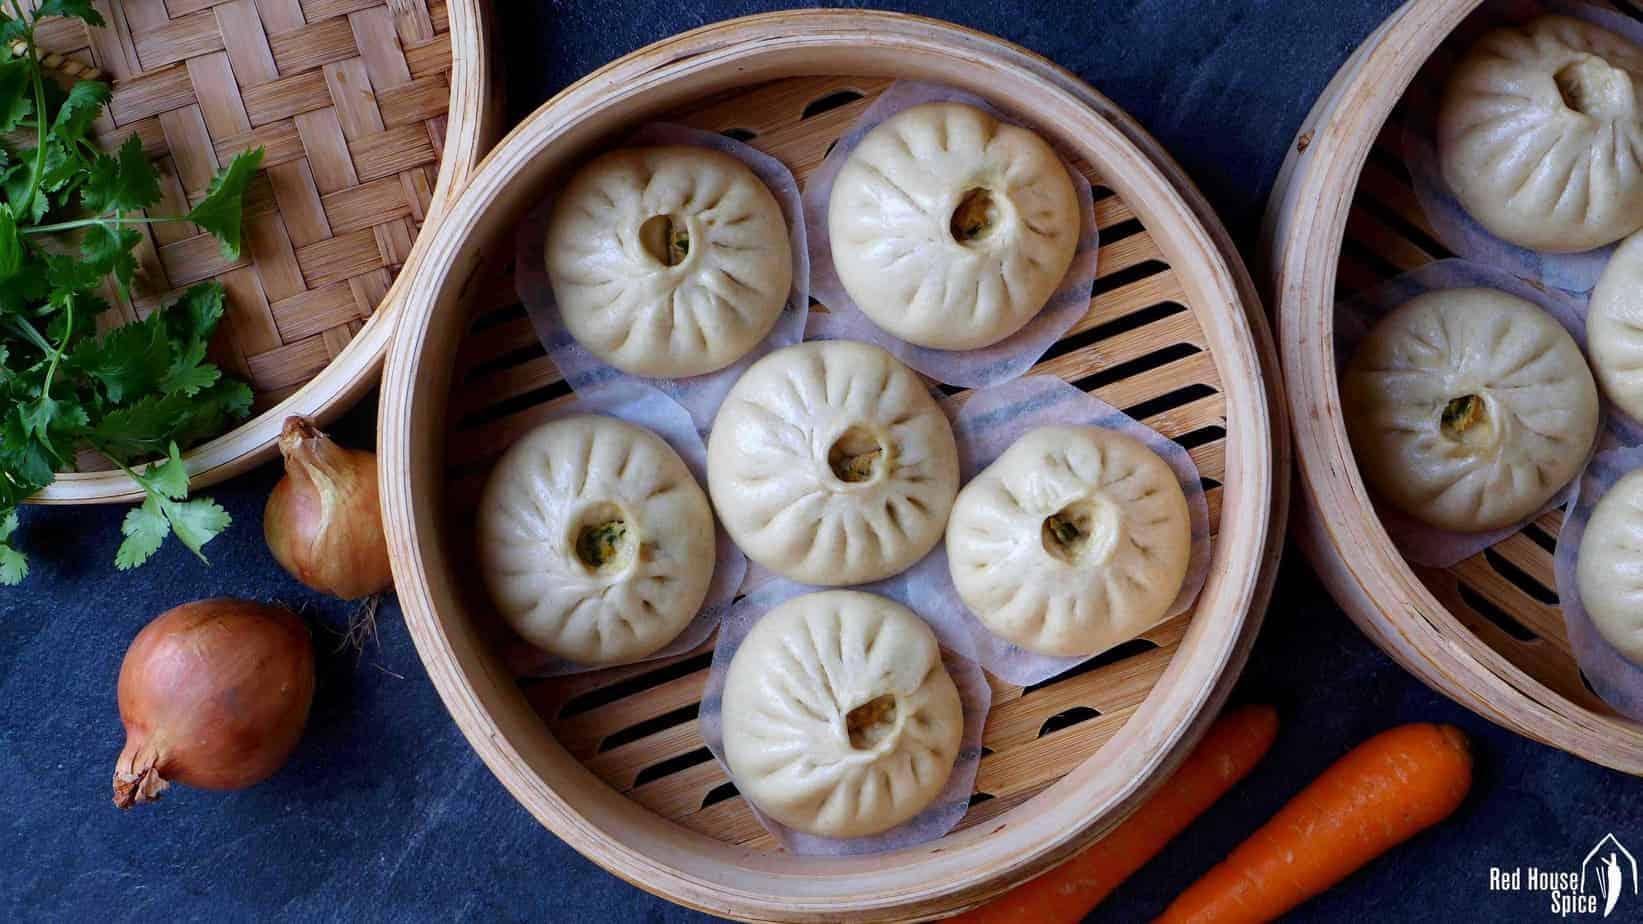 Steamed bao buns (包子), a complete guide